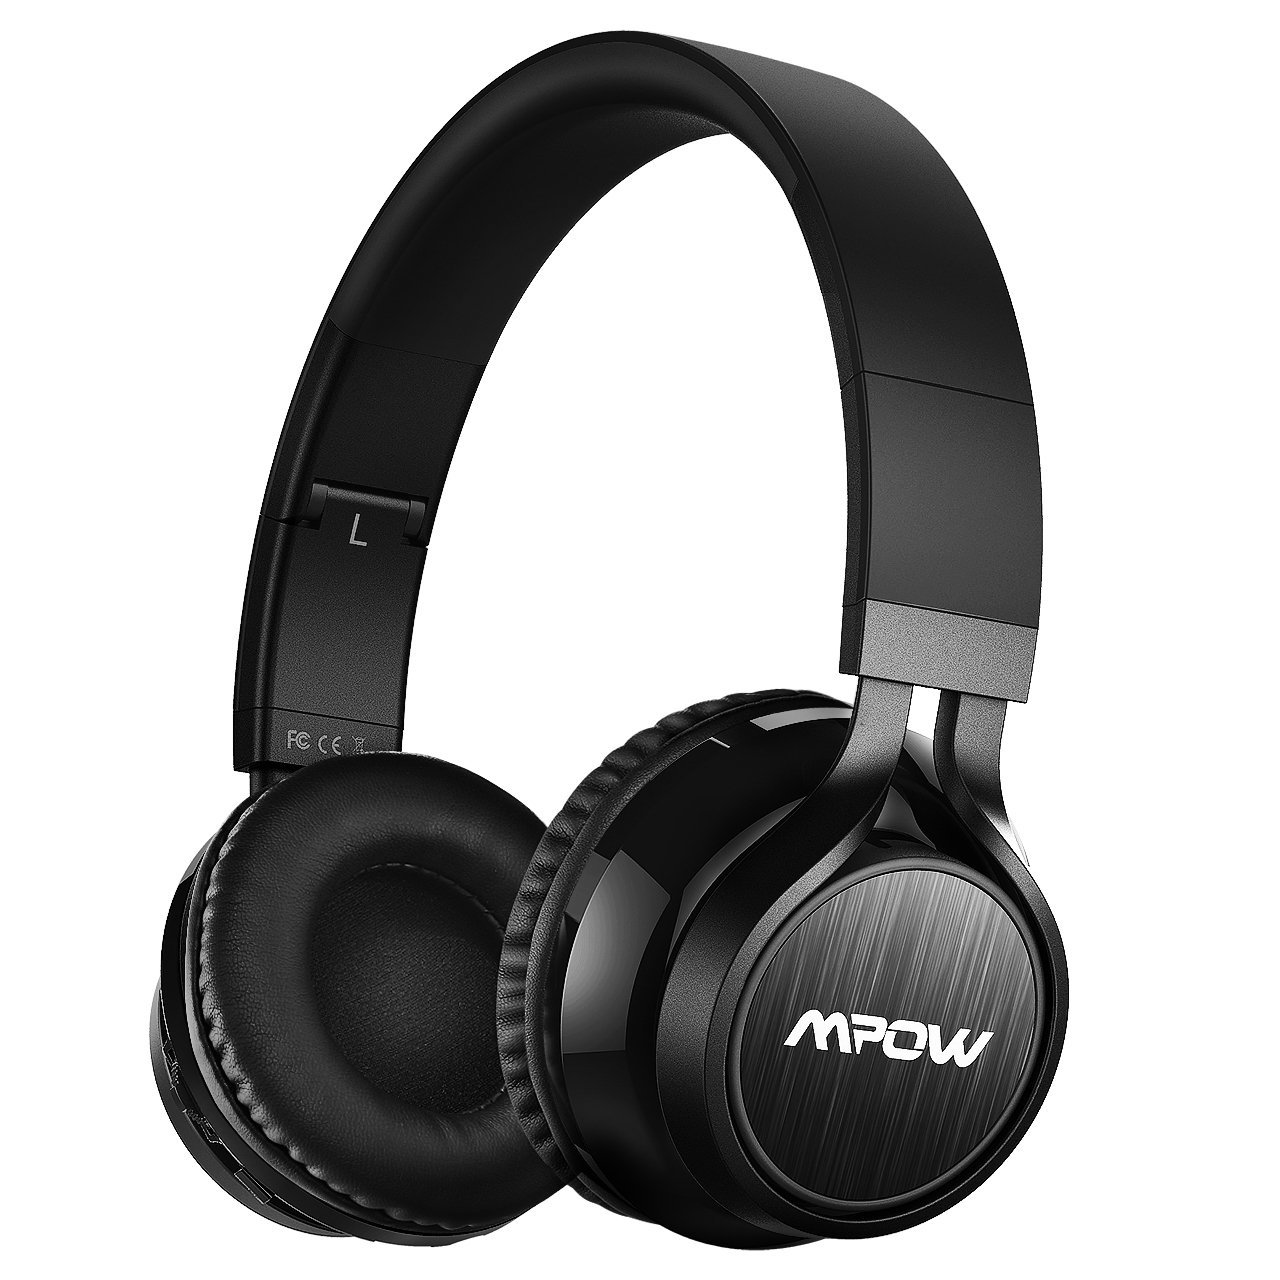 Auriculares Mpow Thor Bluetooth Over-Ear Inalambrico Headset Portatil con Mic & Cord Mode 120 Songs Playing Time para TV